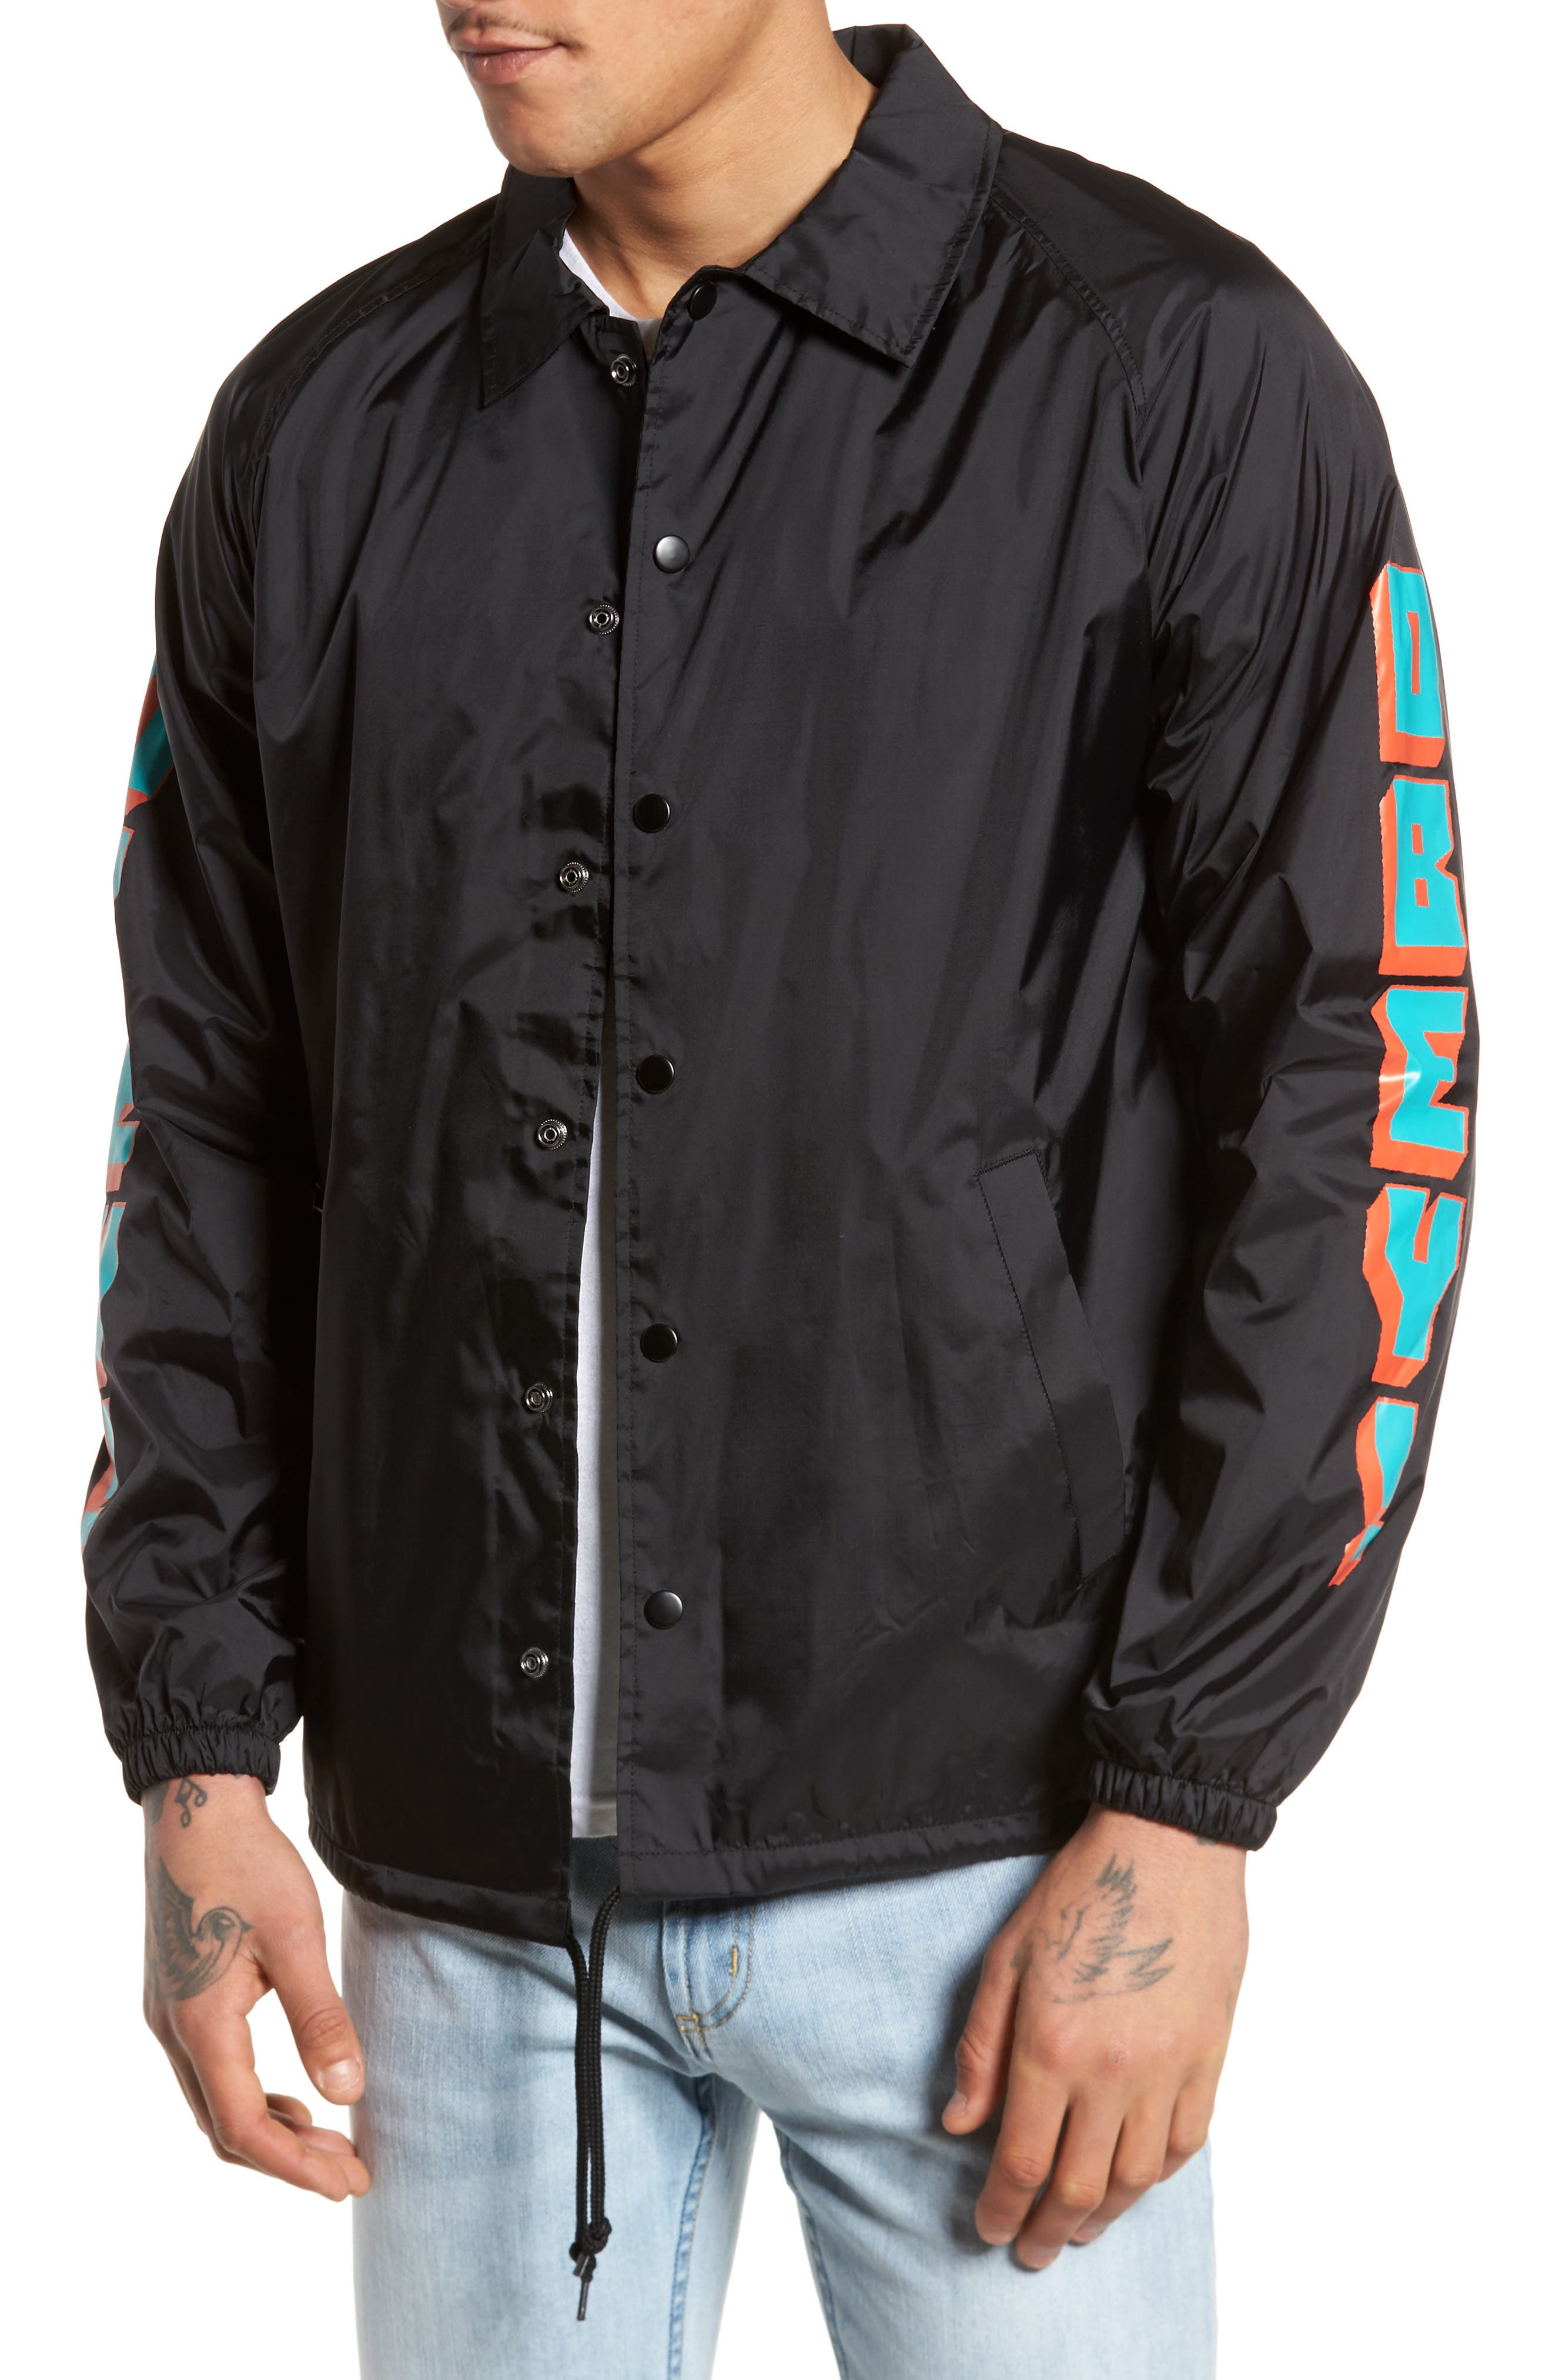 New World 2 Coach's Jacket,                         Main,                         color, Black